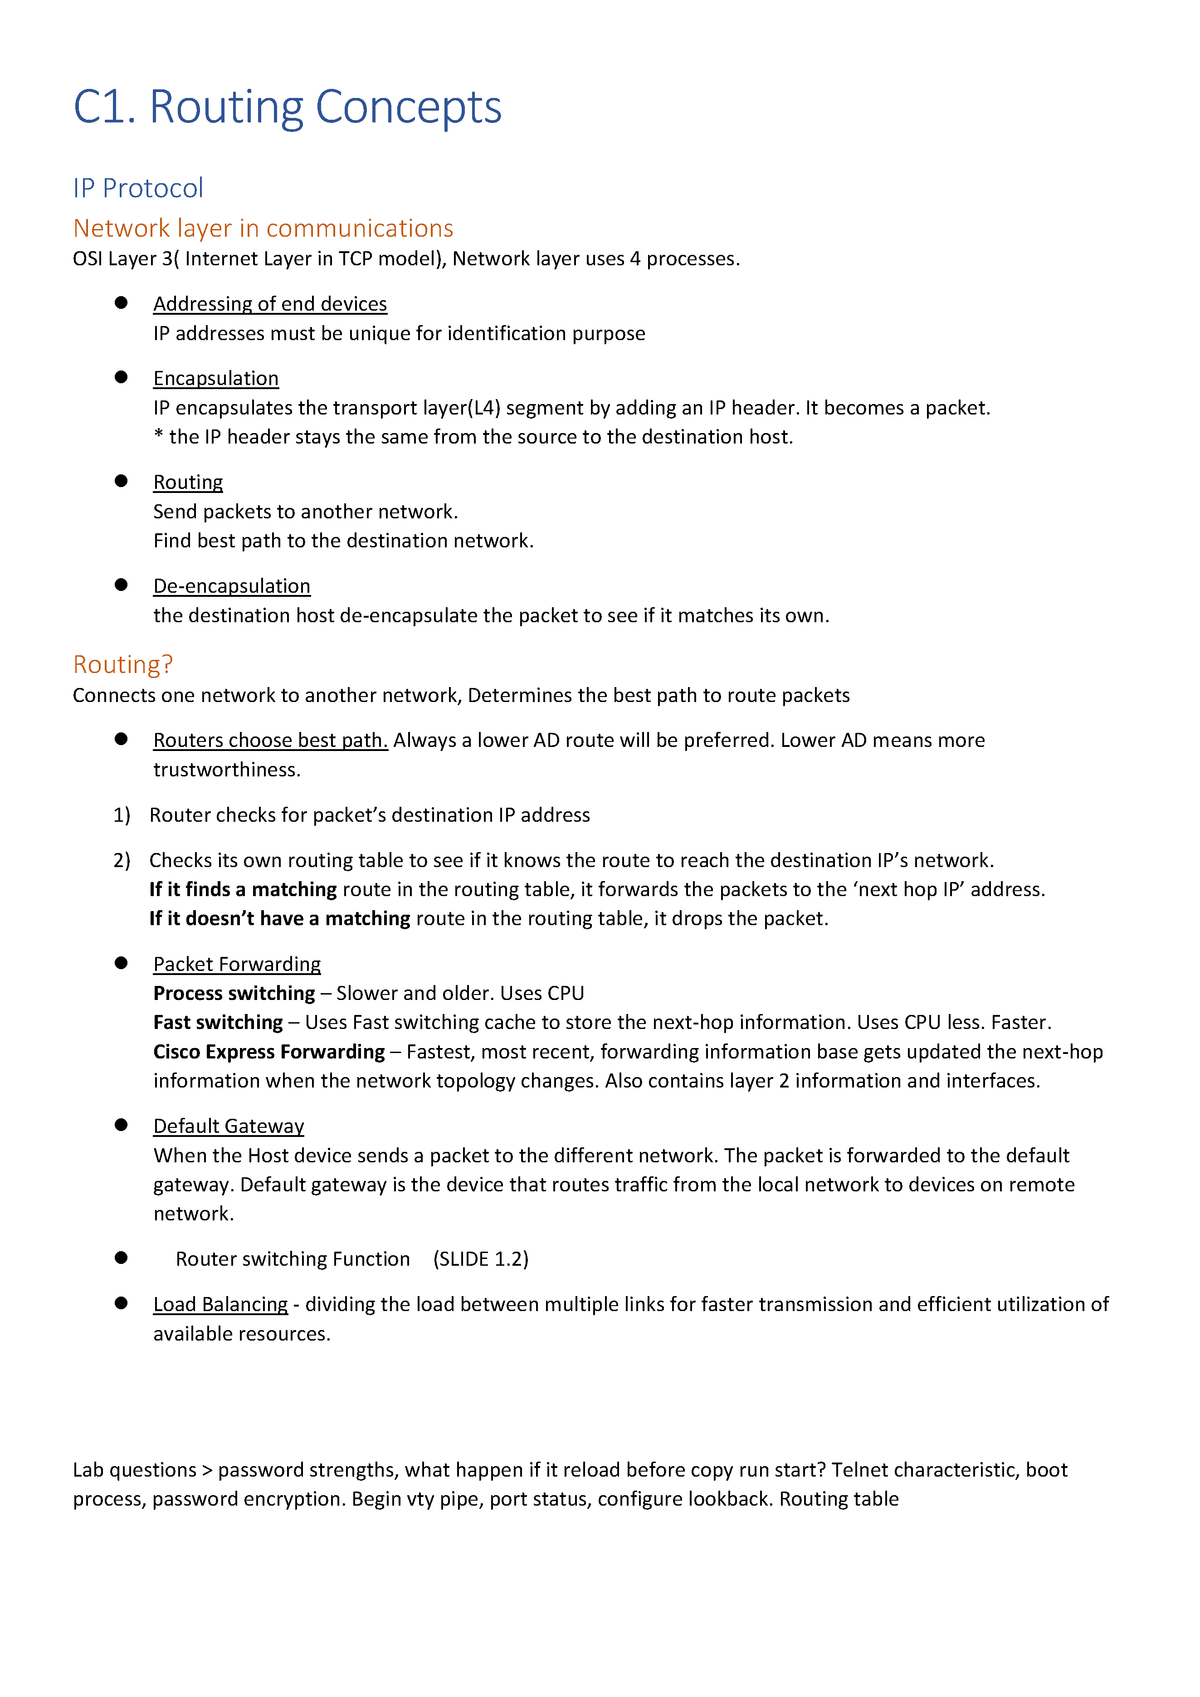 RSE final note - Lecture notes 1-10 - 031269 : Business